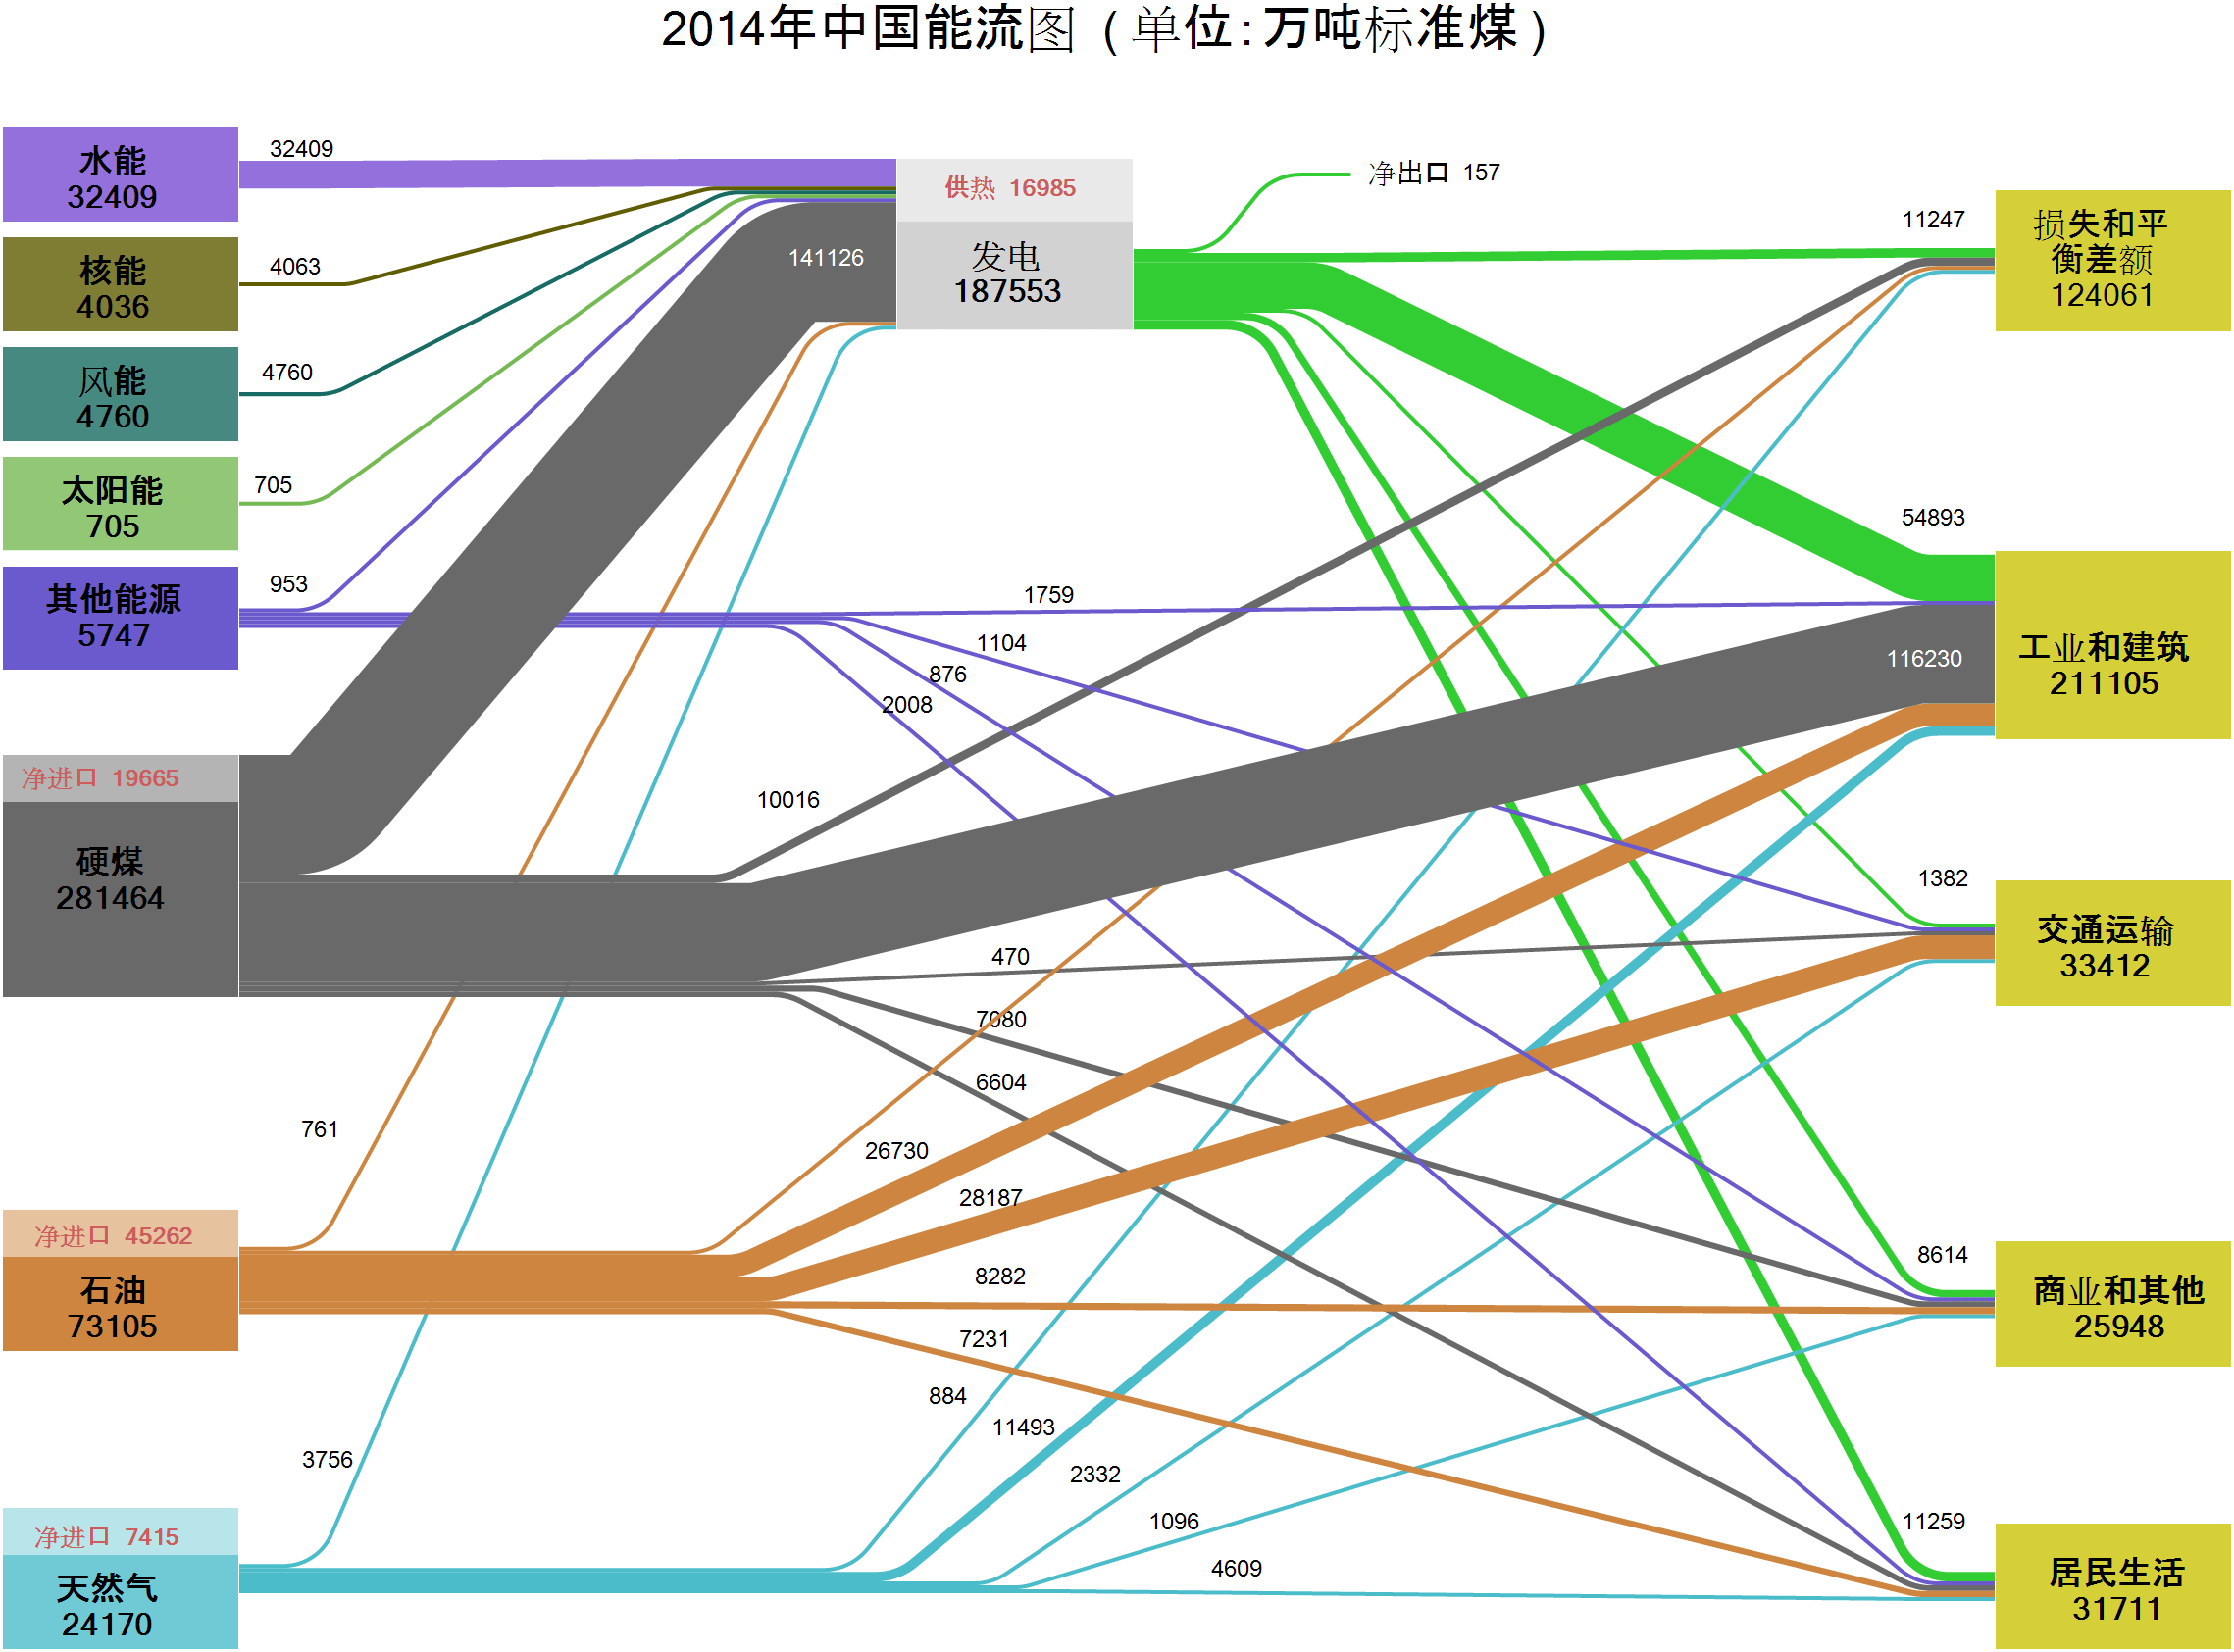 Energy-Flows-China-2014